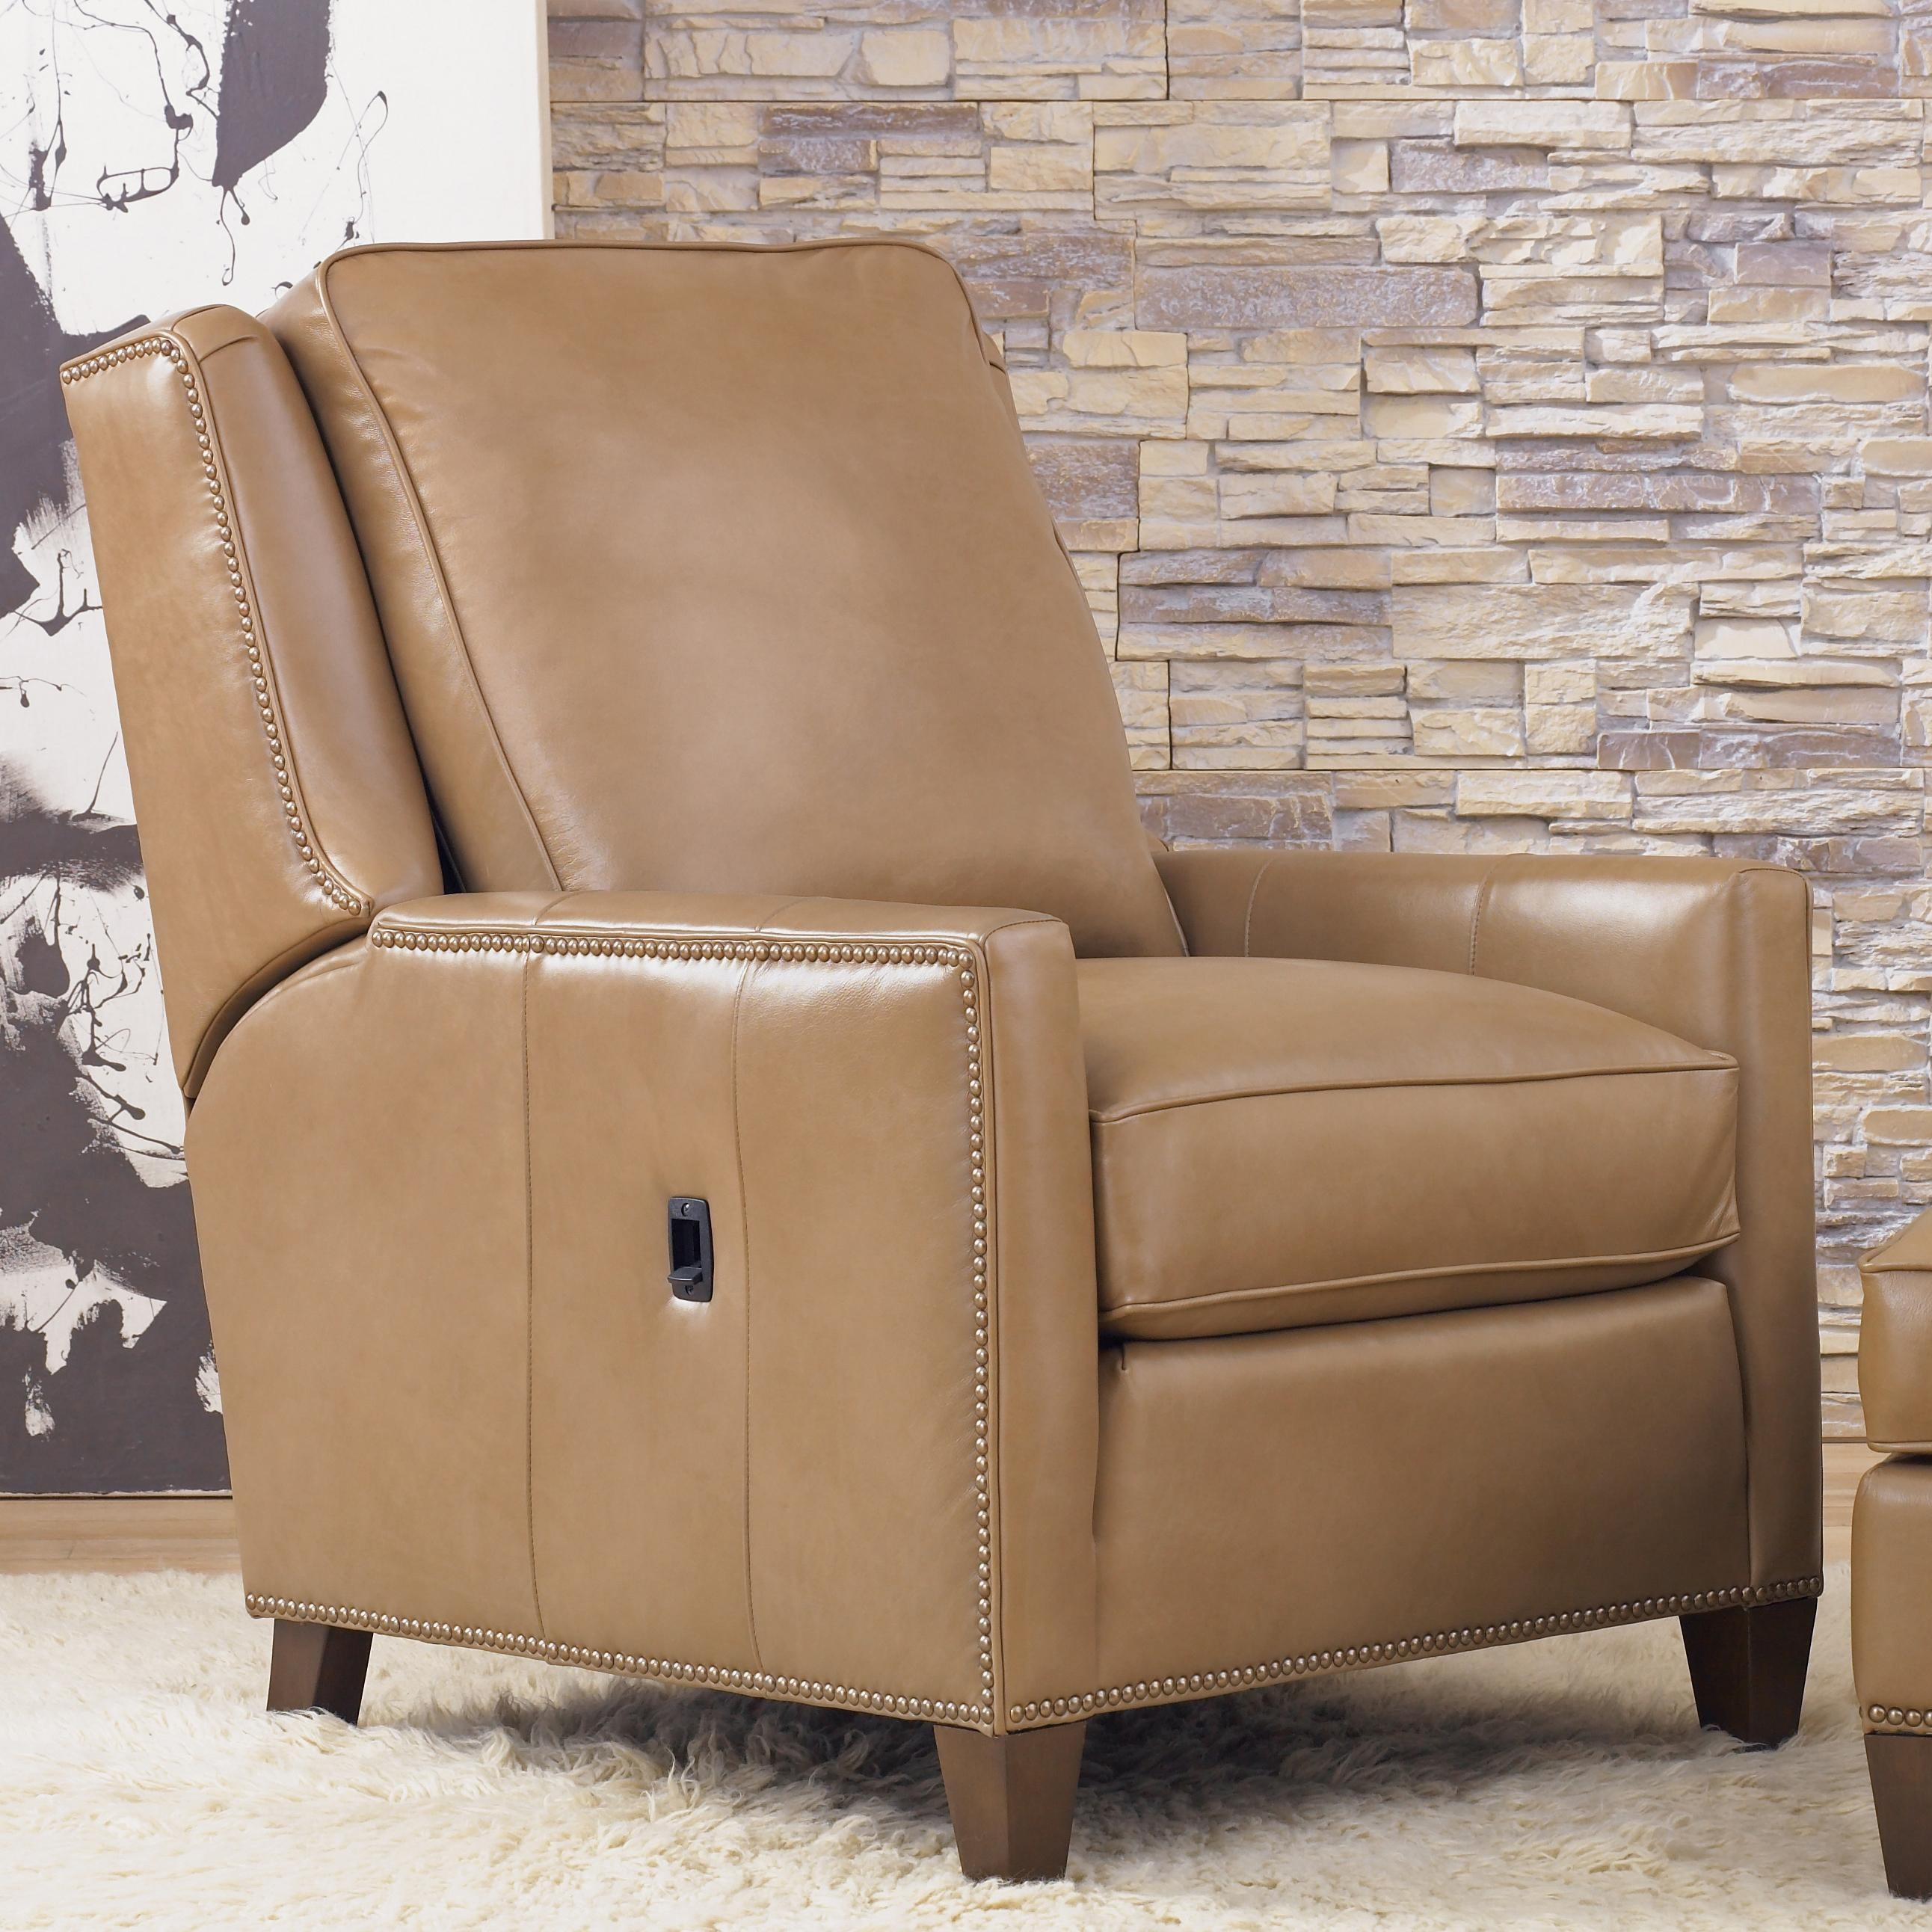 Attirant Recliners Transitional Tilt Back Chair With Nailhead Trim By Smith Brothers